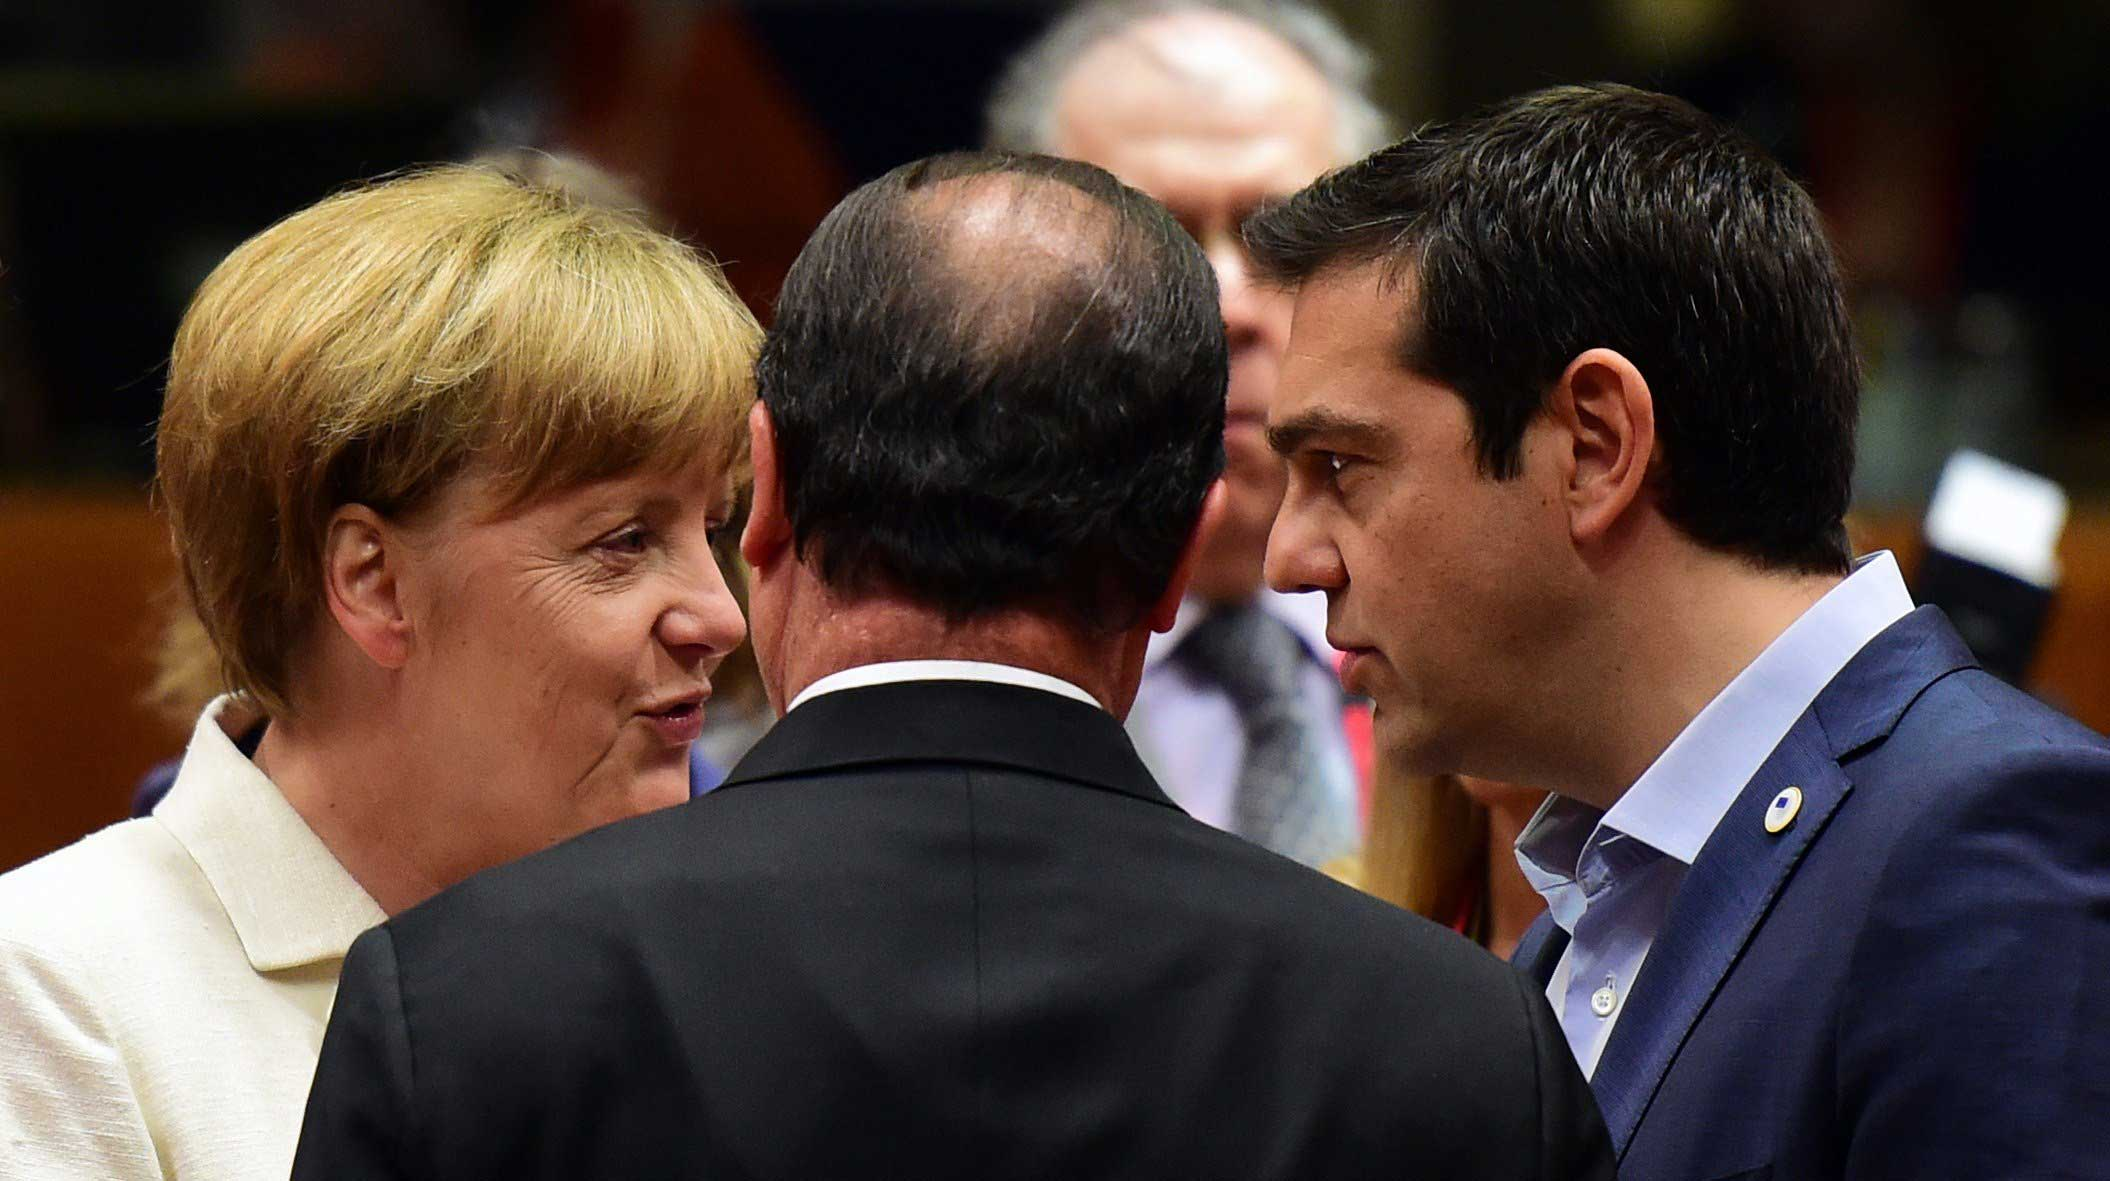 From left: German Chancellor Angela Merkel, French President Francois Hollande, and Greek Prime Minister Alexis Tsipras confer prior to the start of a summit of Eurozone heads of state in Brussels on July 12, 2015.